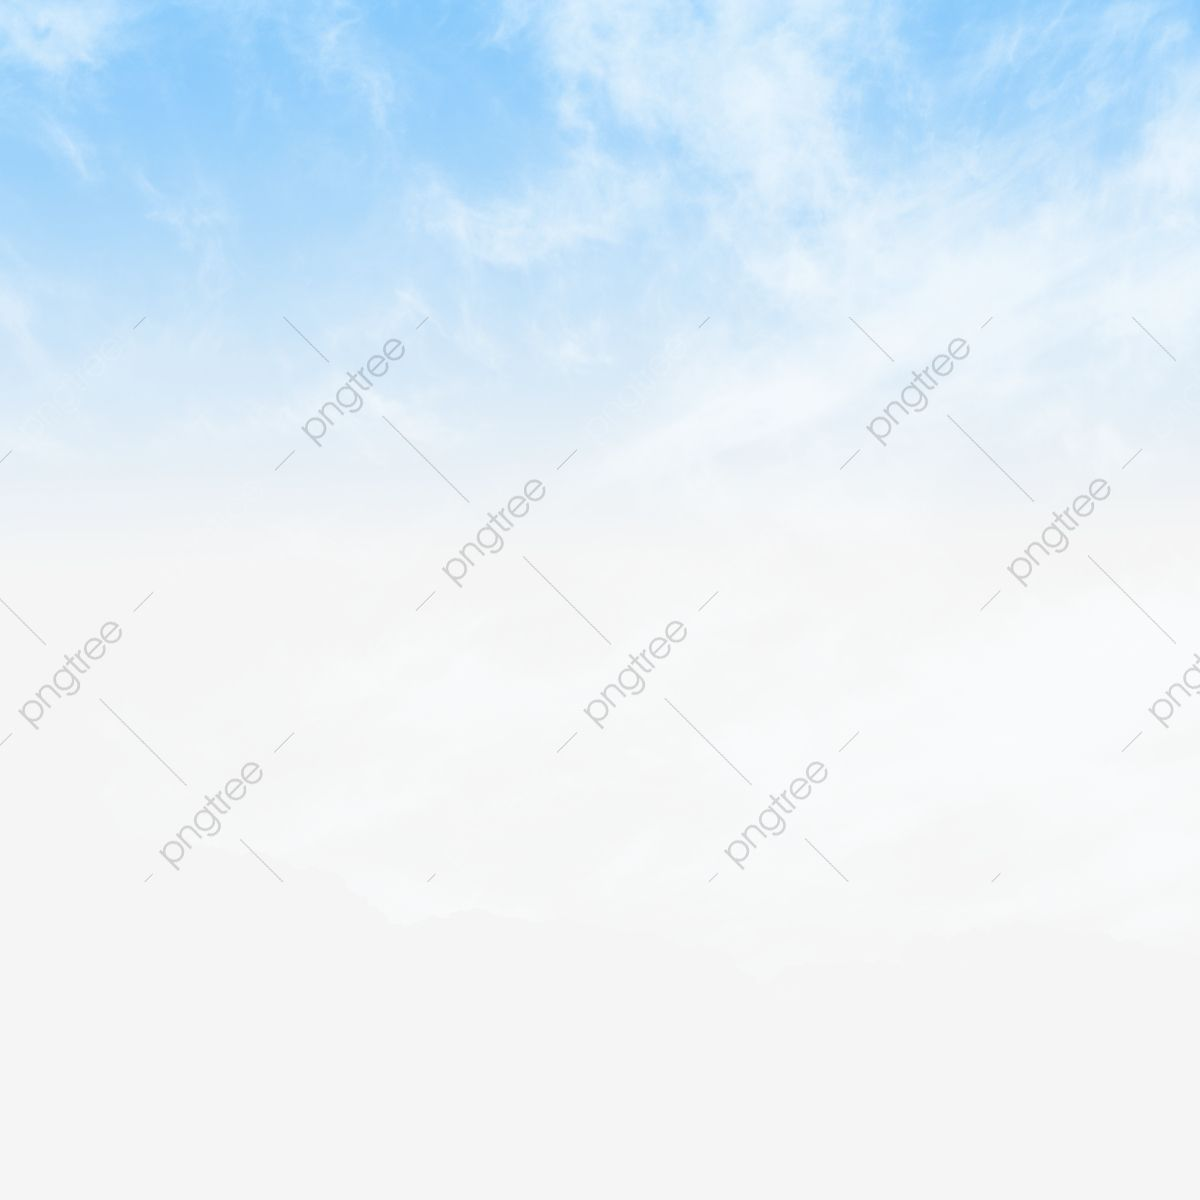 Beautiful Blue Sky And White Clouds Sky Sunlight Blue Sky White Clouds Beautiful Png Transparent Clipart Image And Psd File For Free Download Blue Sky Background White Clouds Beautiful Sky